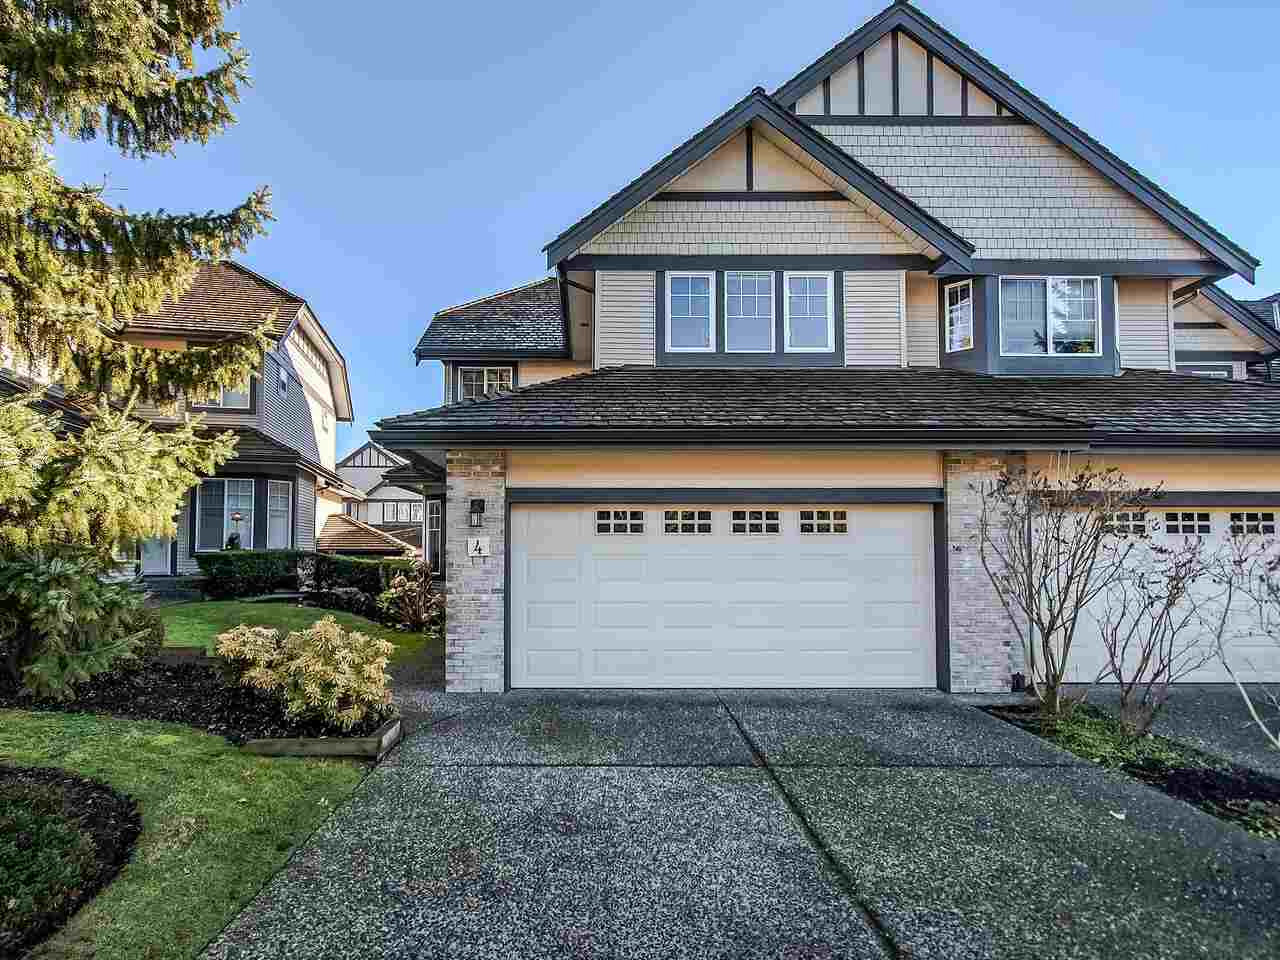 4 1765 PADDOCK DRIVE - Westwood Plateau Townhouse for sale, 4 Bedrooms (R2520449) - #1